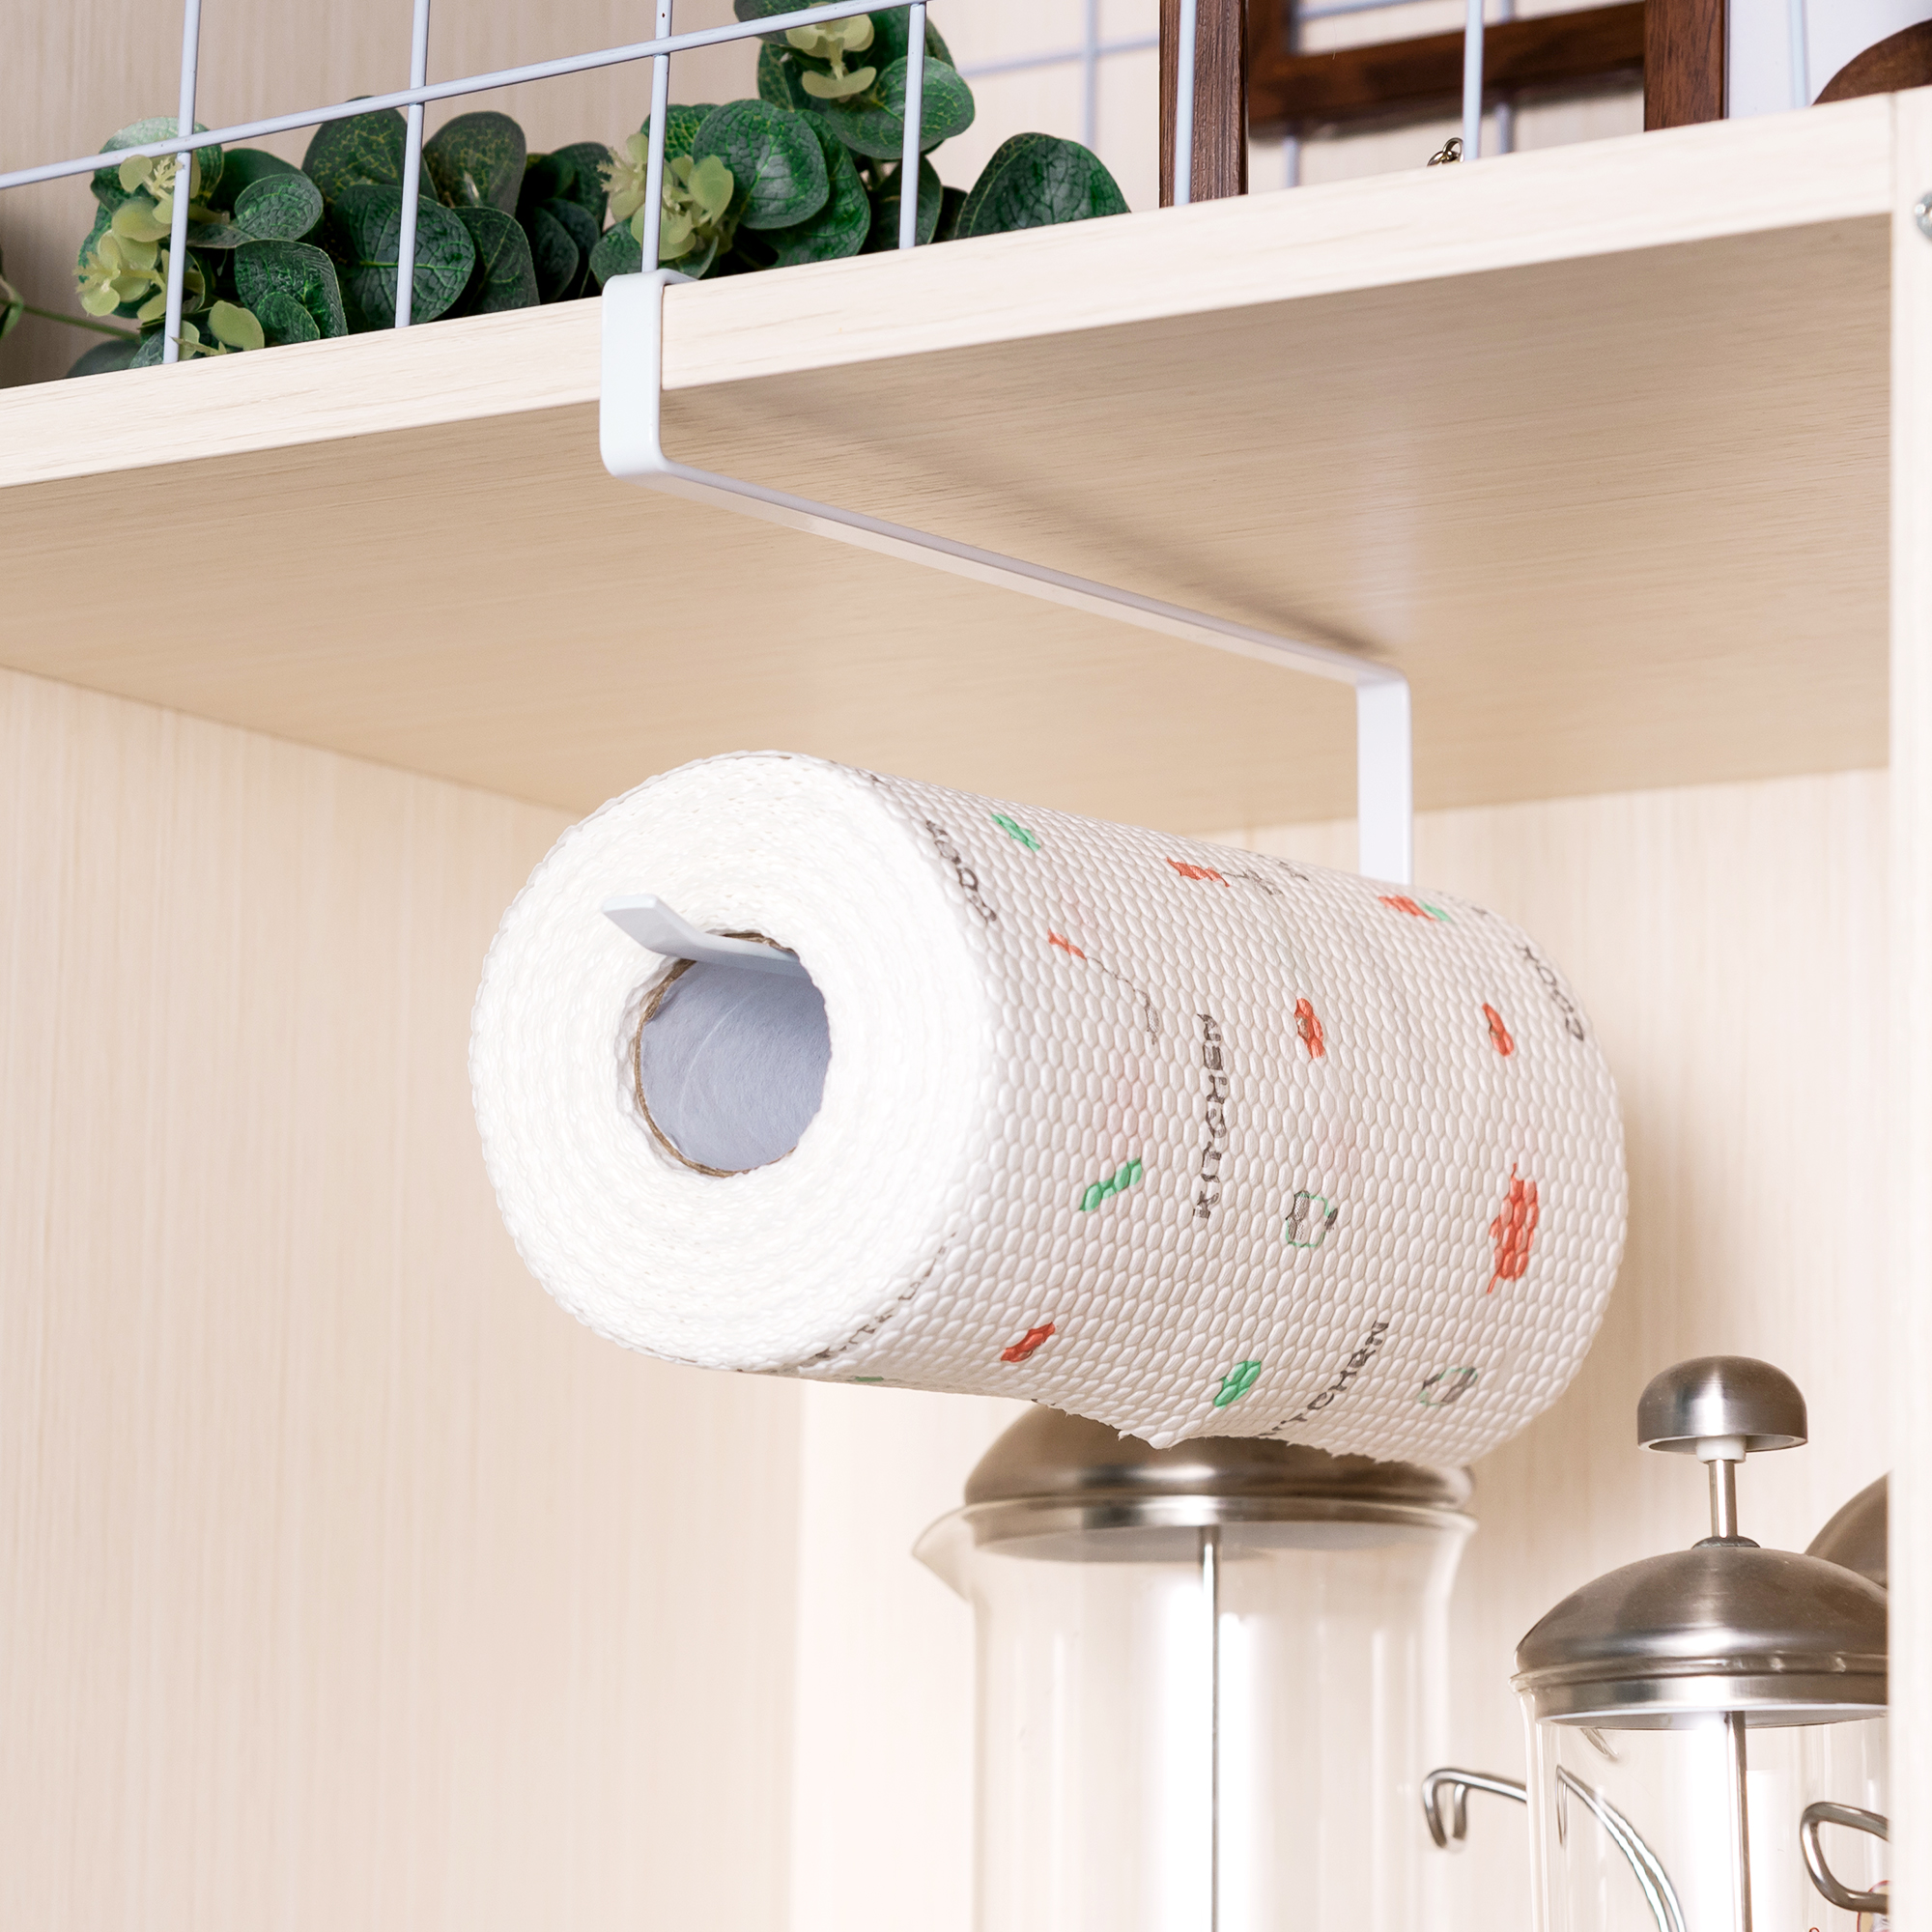 Creative Wrought Iron Storage Paper Towel Holder Free Punch Paper Holder For Bathroom Kitchen Living Room Durable Roll Holder